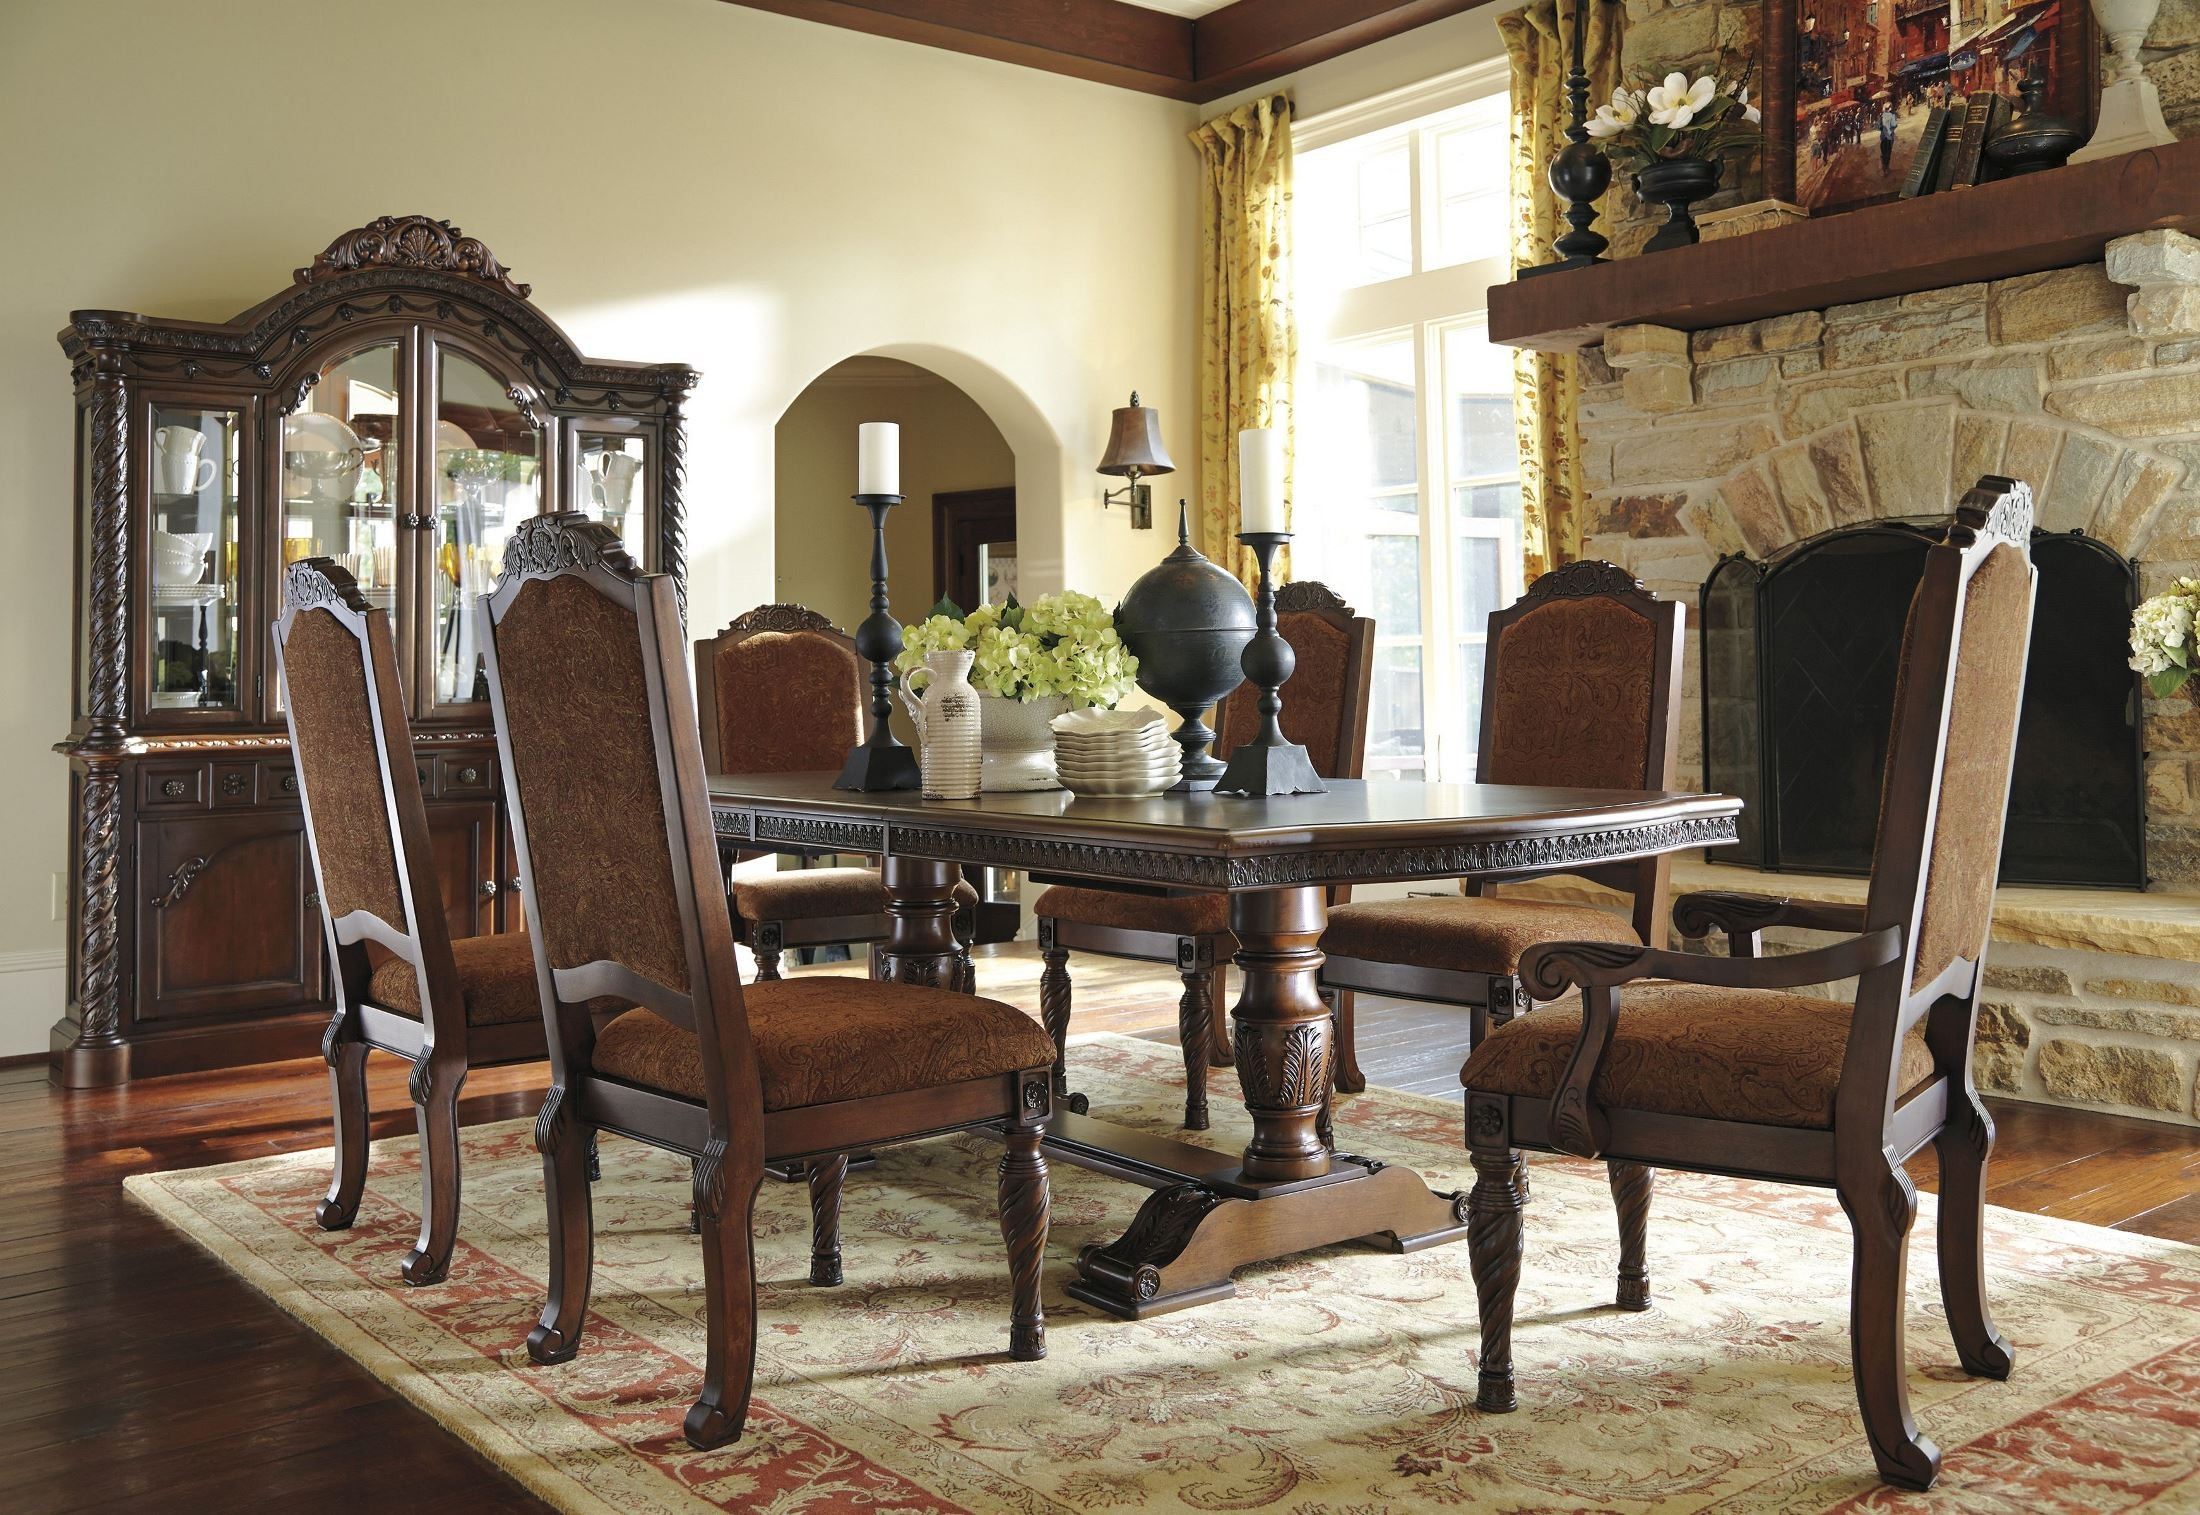 ... Dining Room Set From Millennium By Ashley. 2298846. 2298696. 2298695.  1697918. 1697927